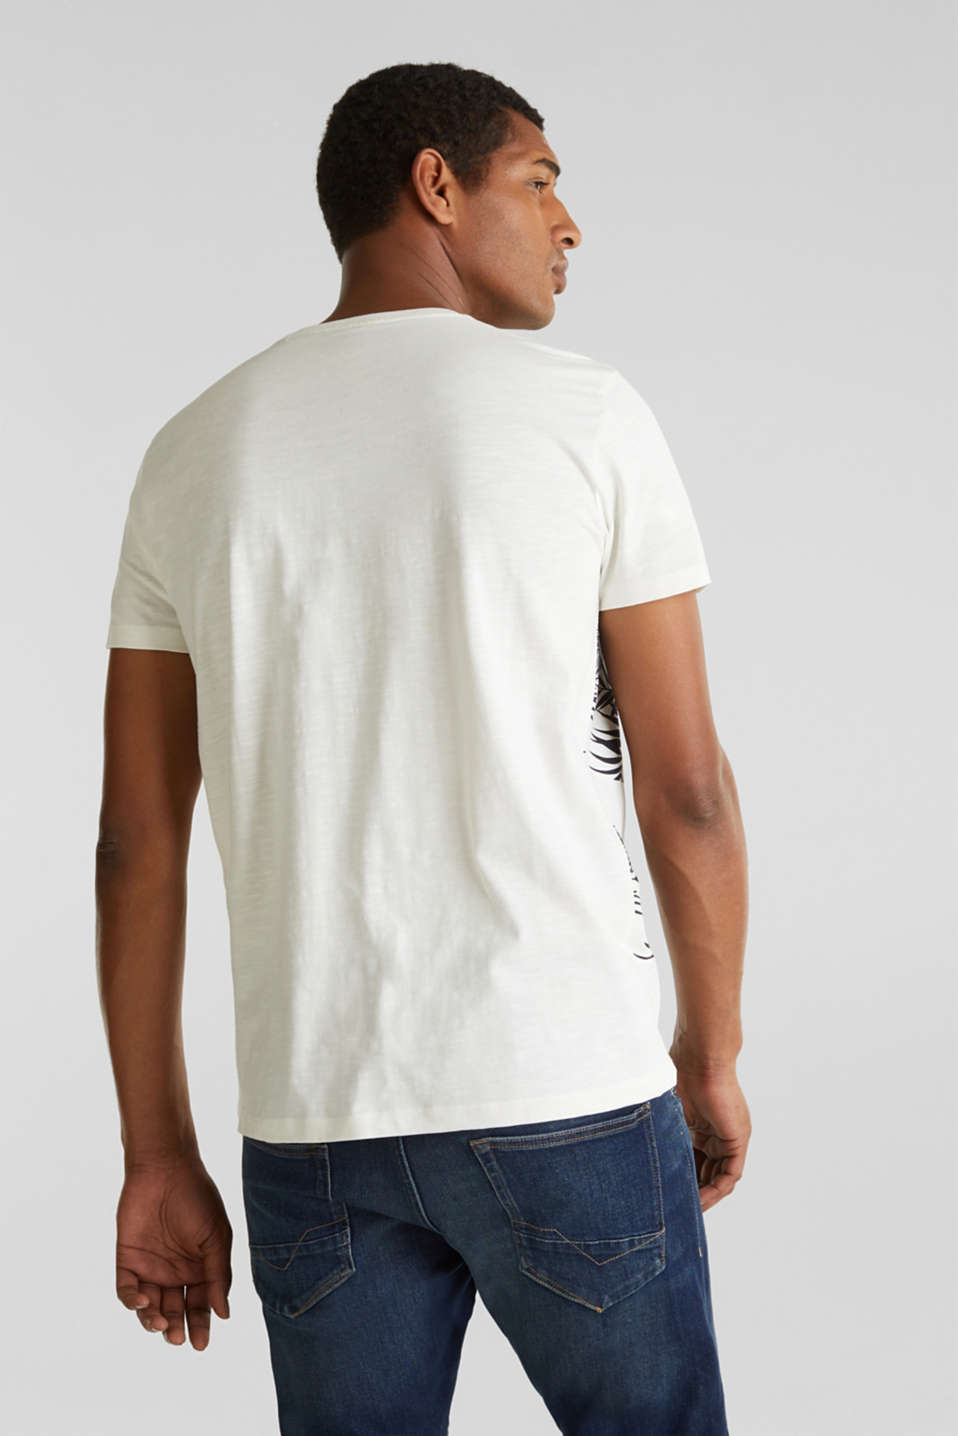 Printed jersey top with a pocket, 100% organic cotton, OFF WHITE 4, detail image number 3